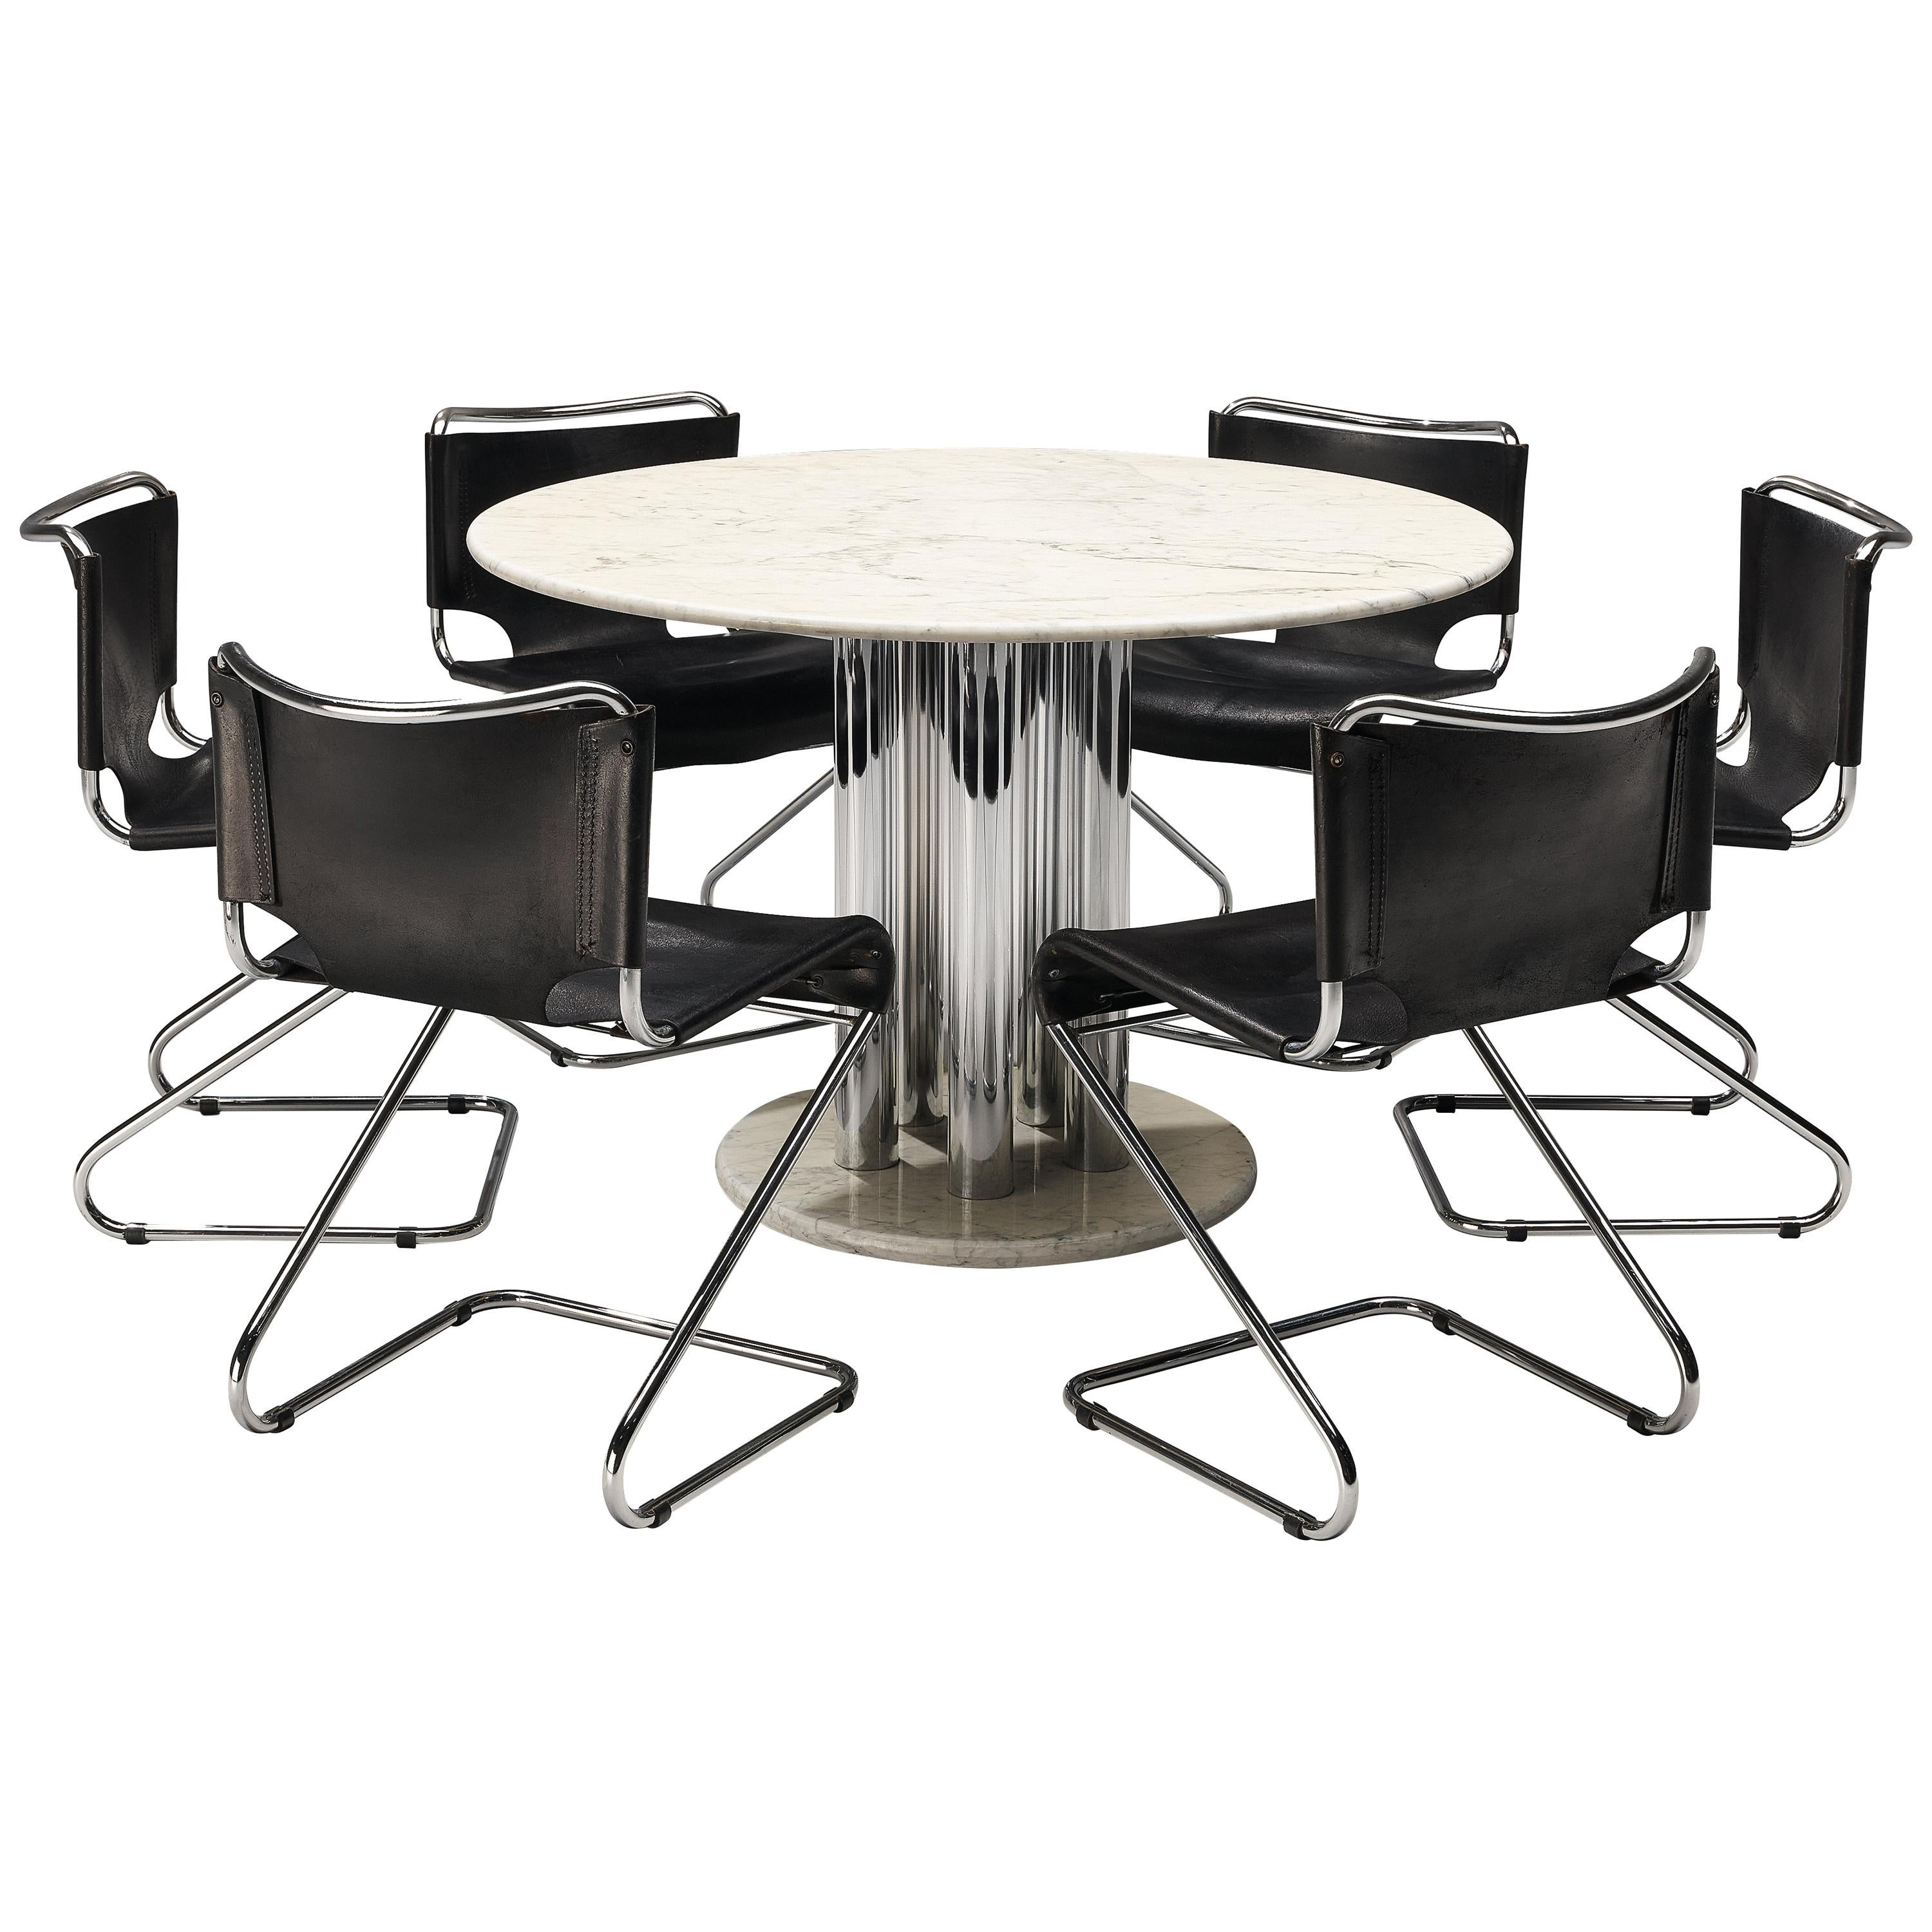 Postmodern Marble Dining Table with Pascal Mourgue 'Biscia' Chairs in Leather